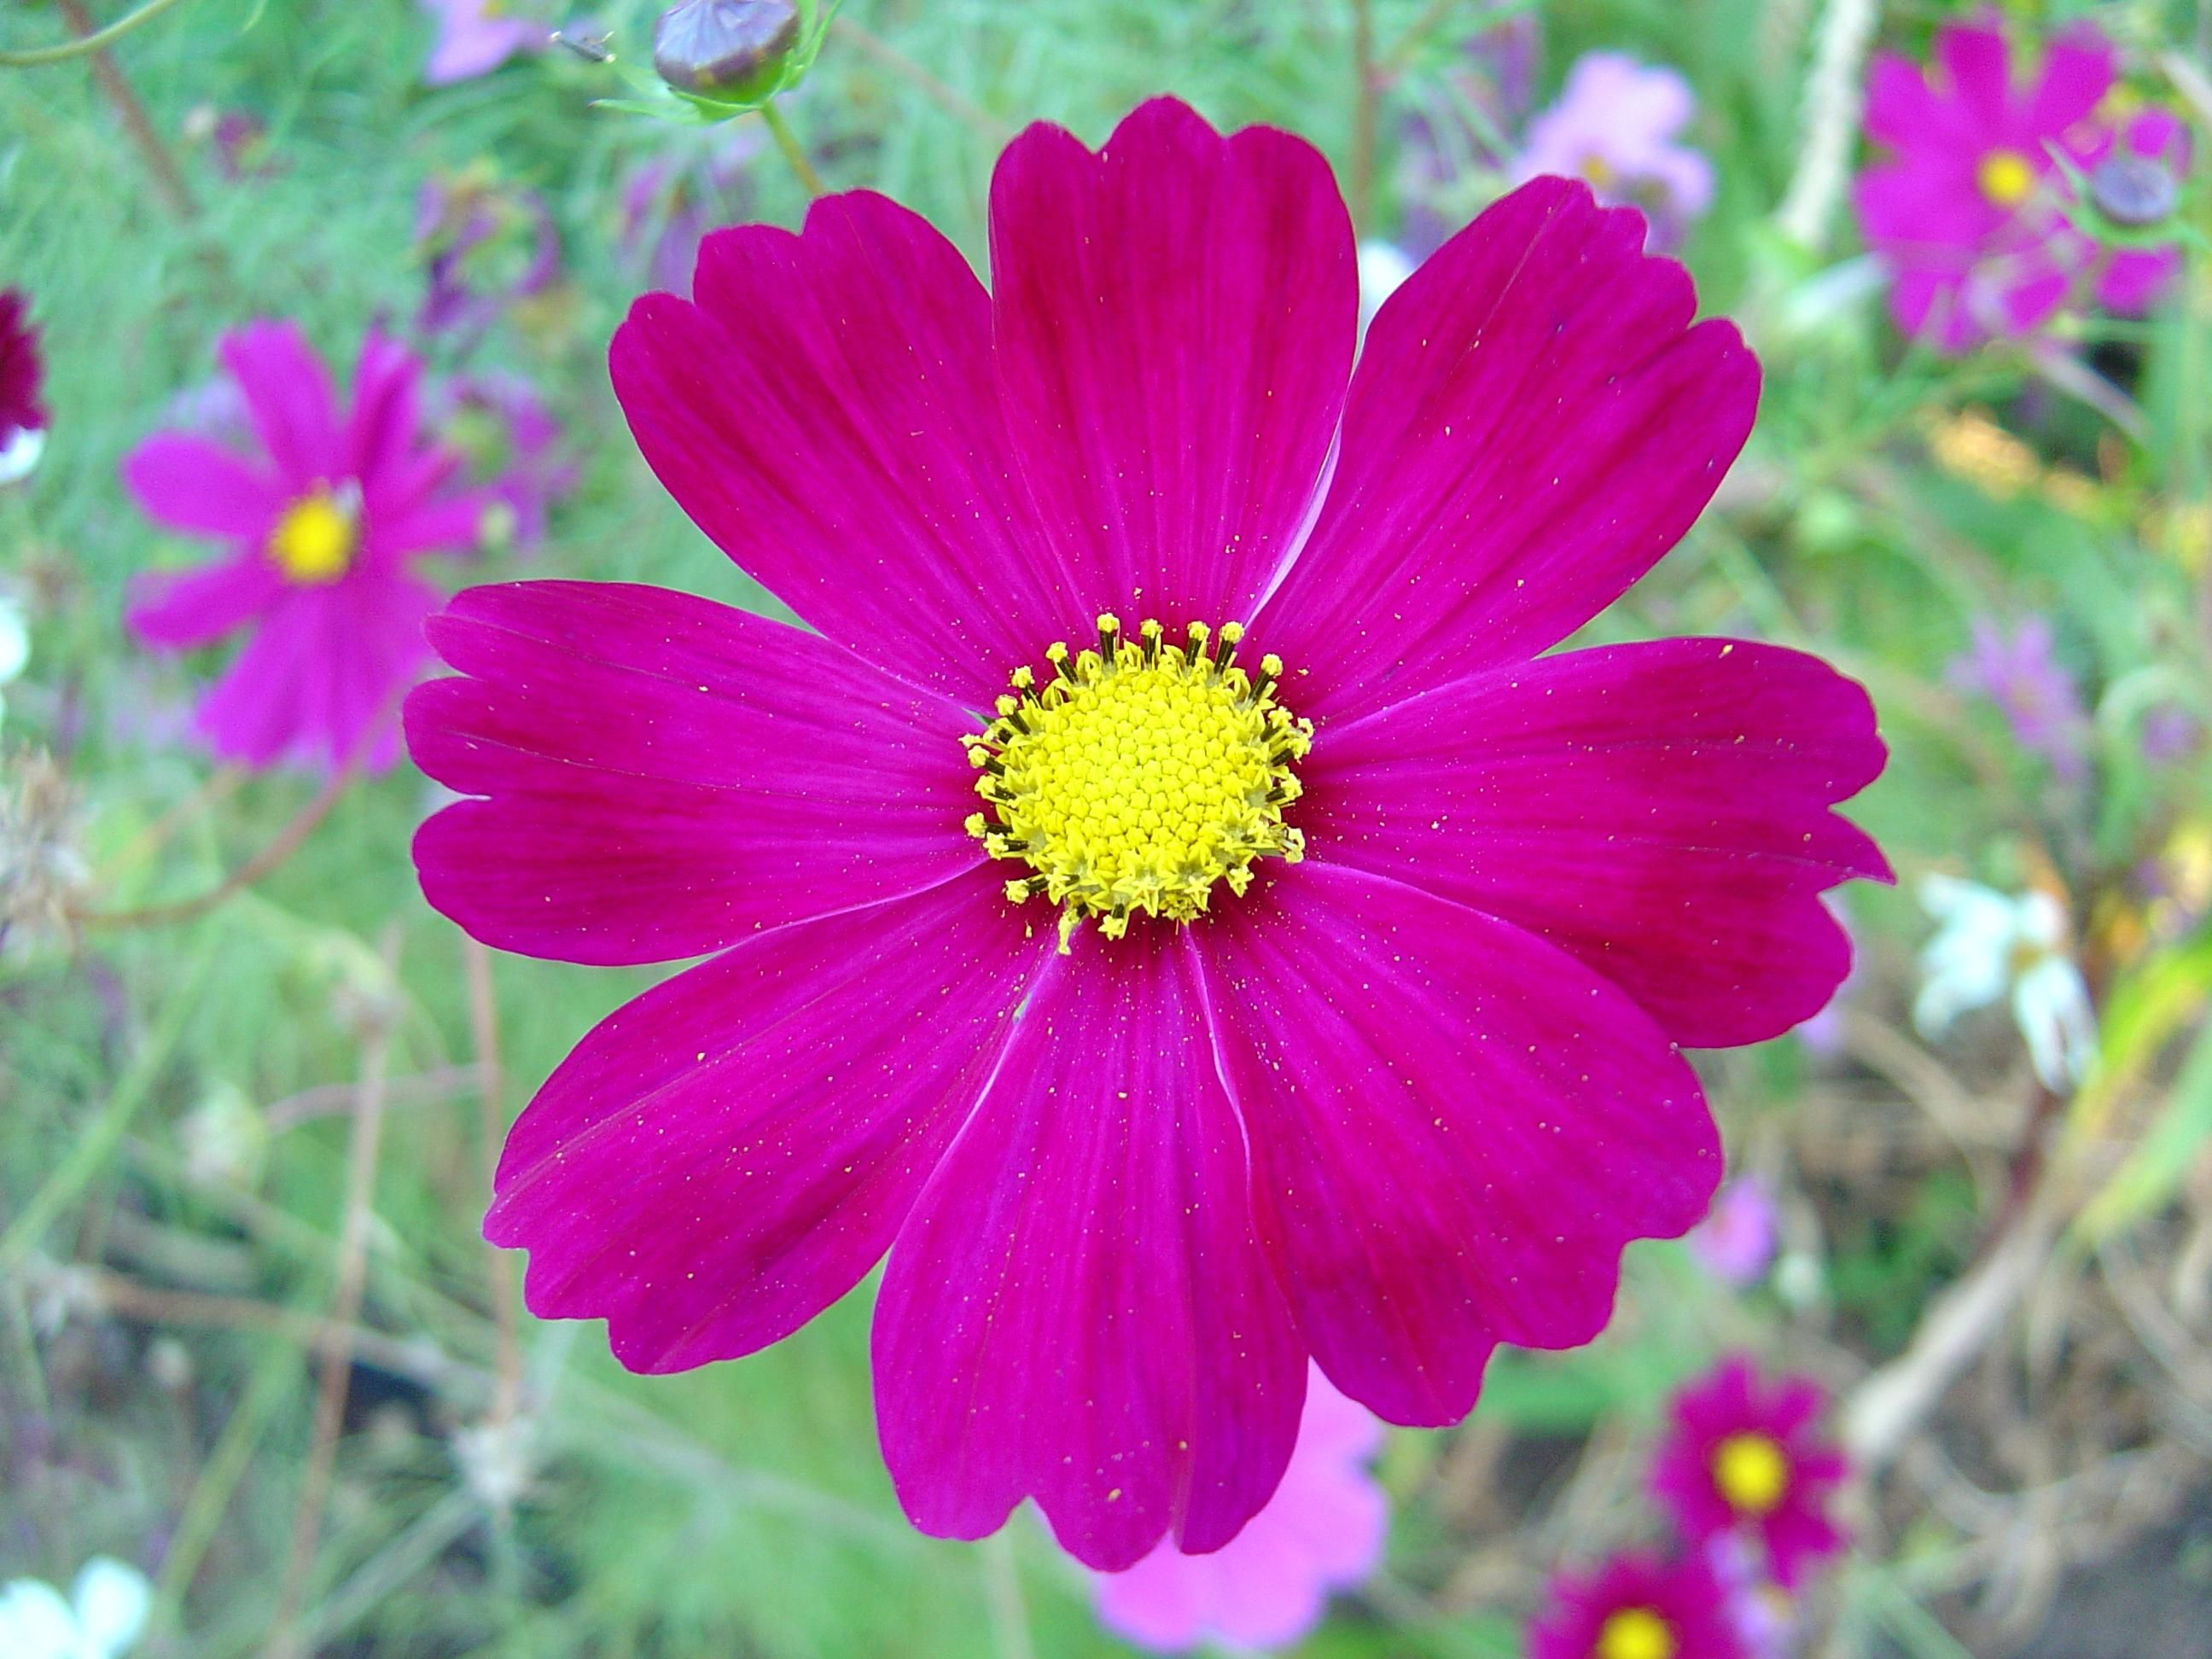 File:Dark pink cosmos flower.jpg - Wikimedia Commons